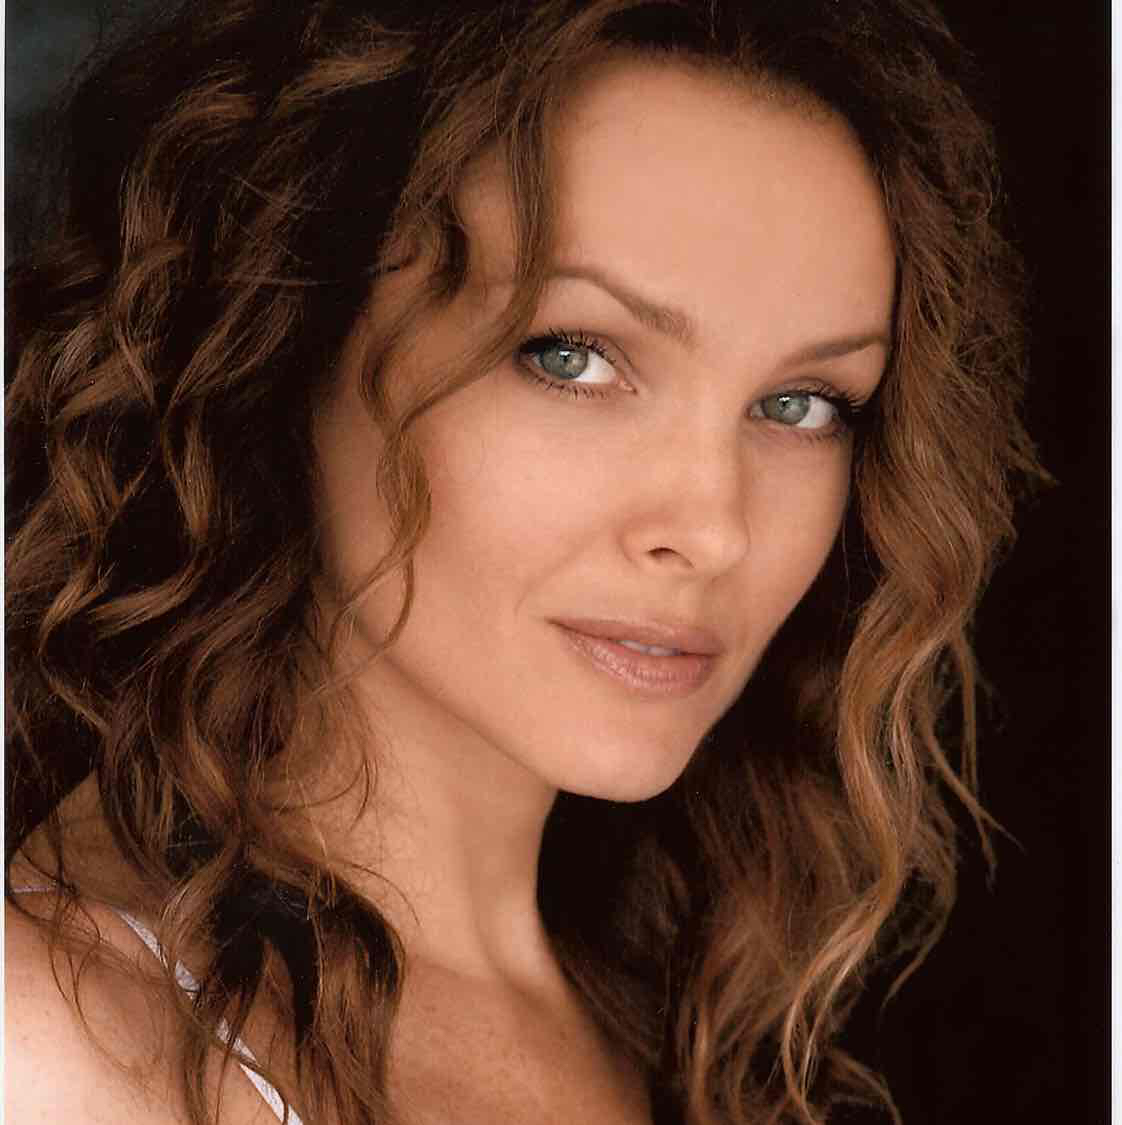 Avatar of Dina Meyer